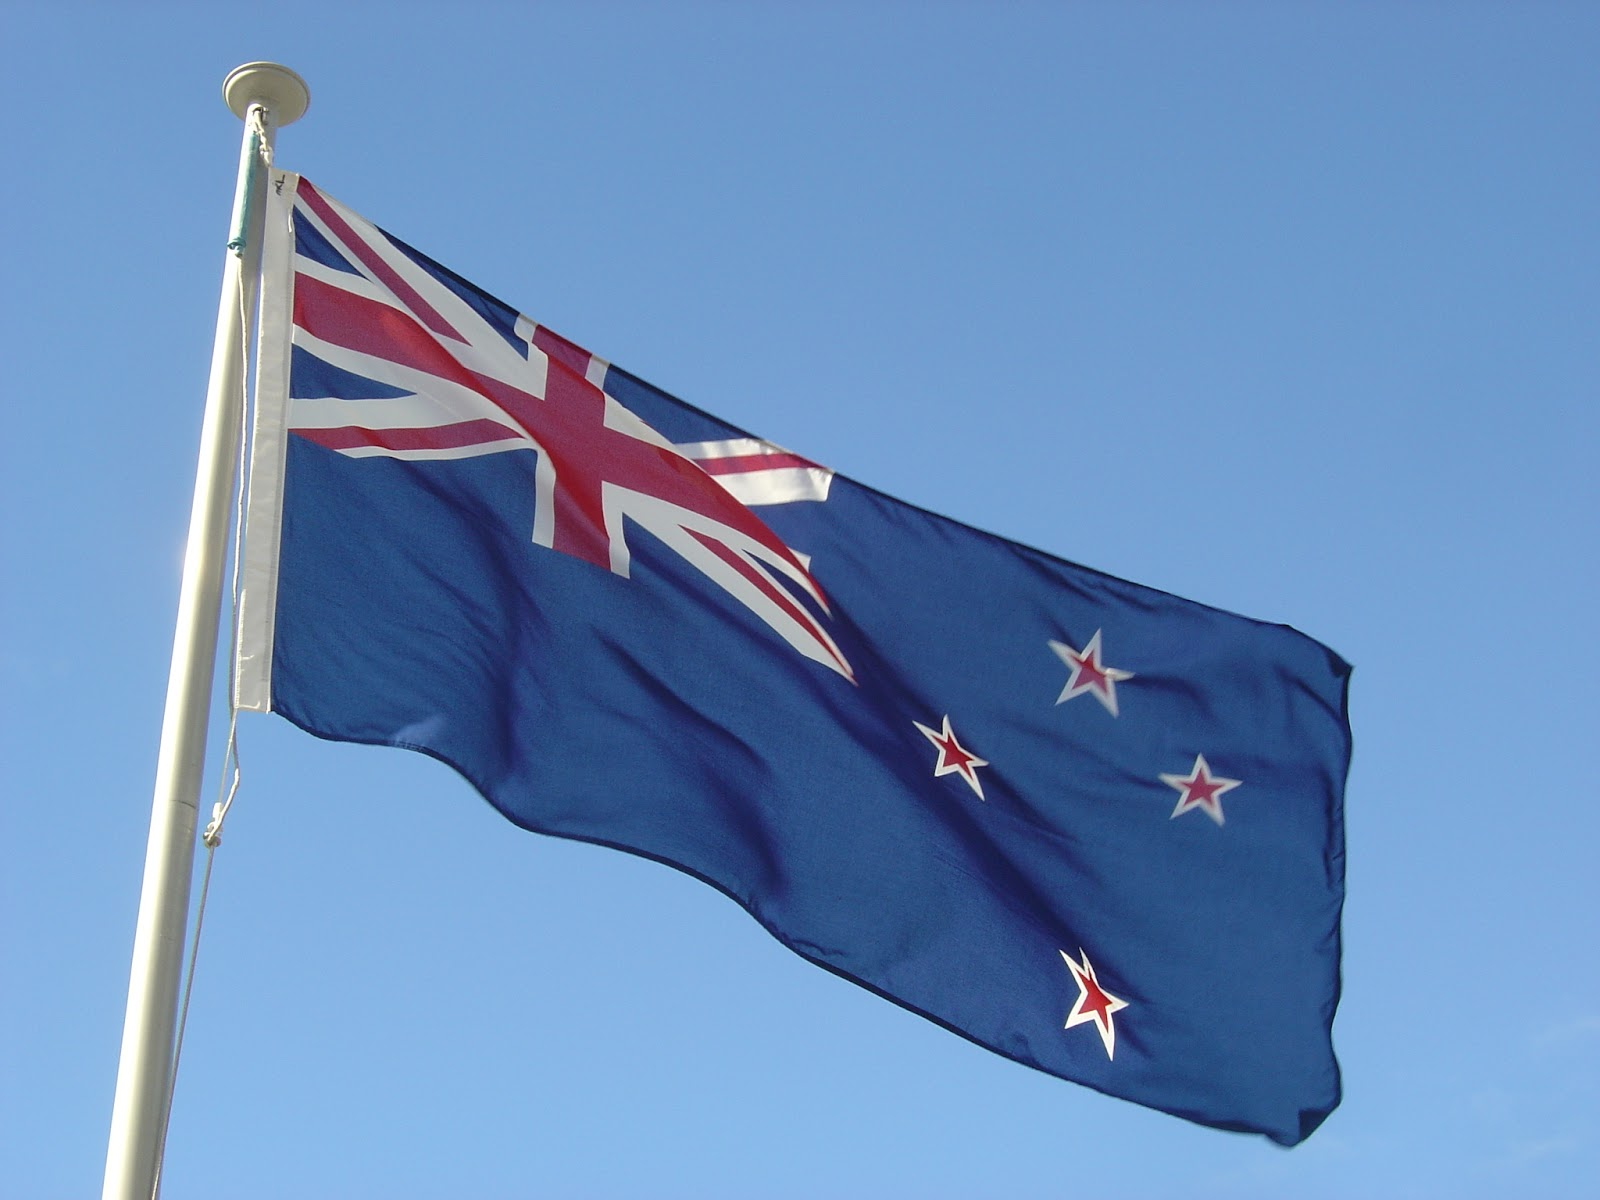 NZ_flag_Photo.jpg